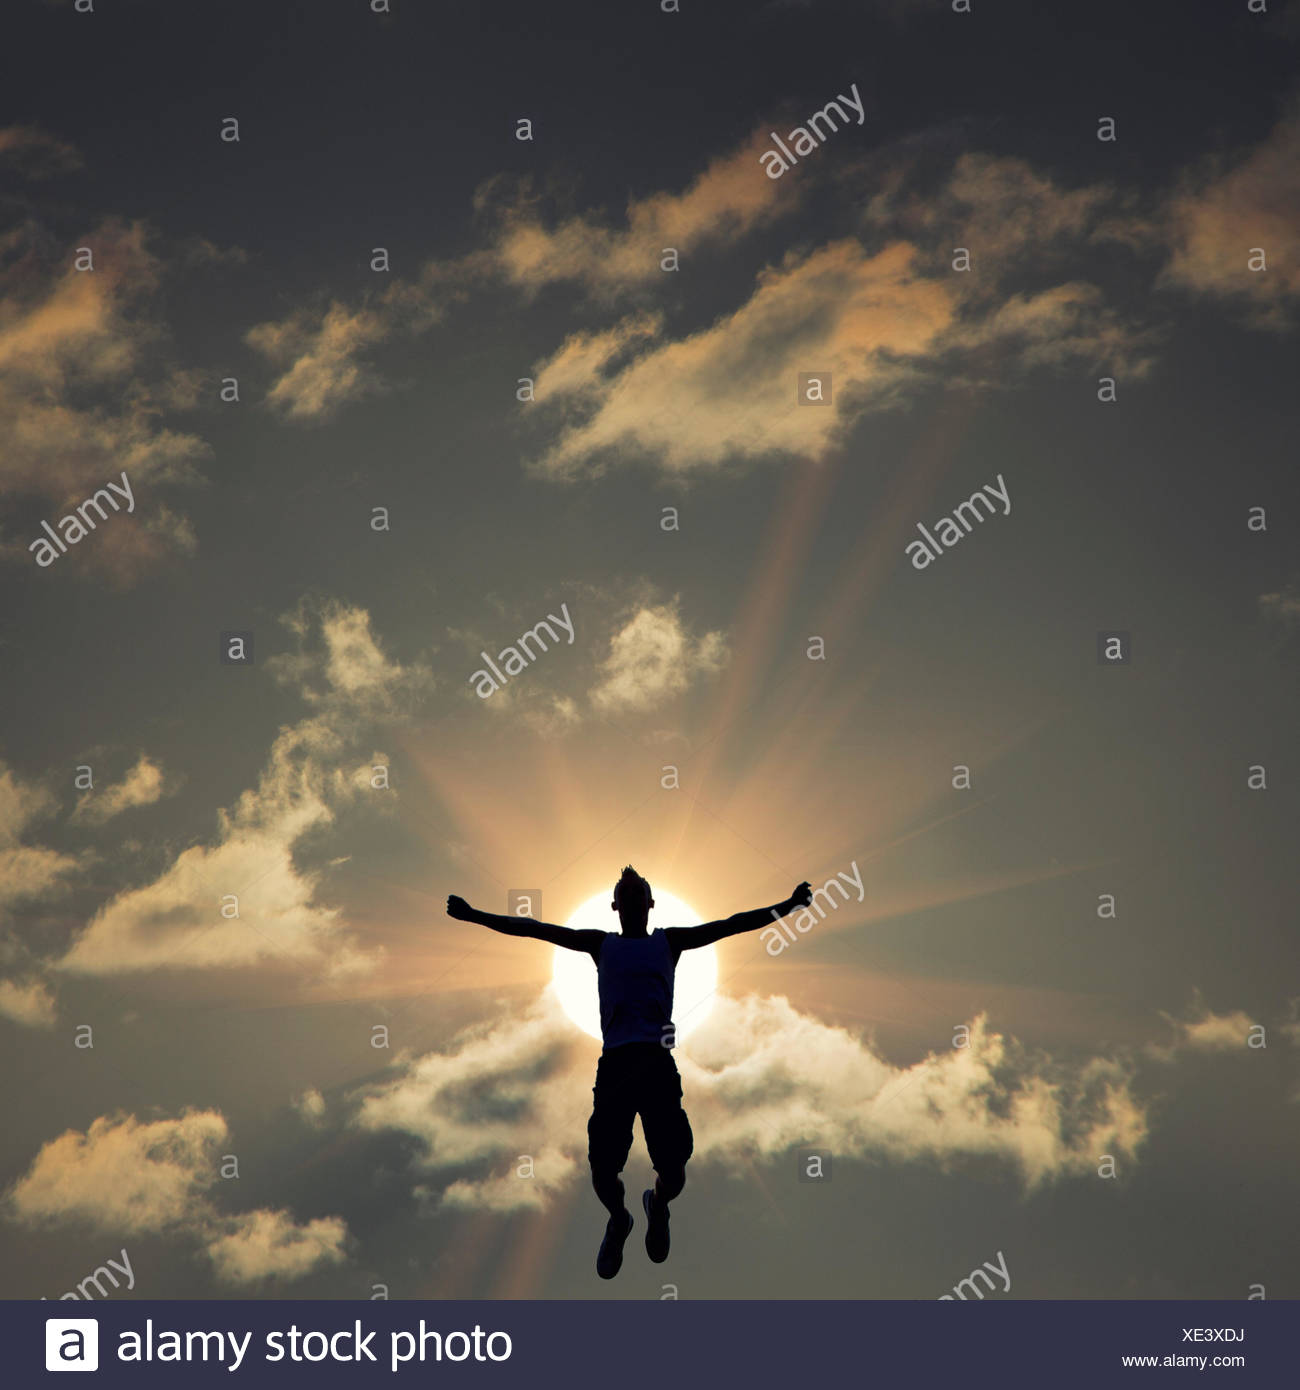 Silhouette of man jumping in front of the sun - Stock Image